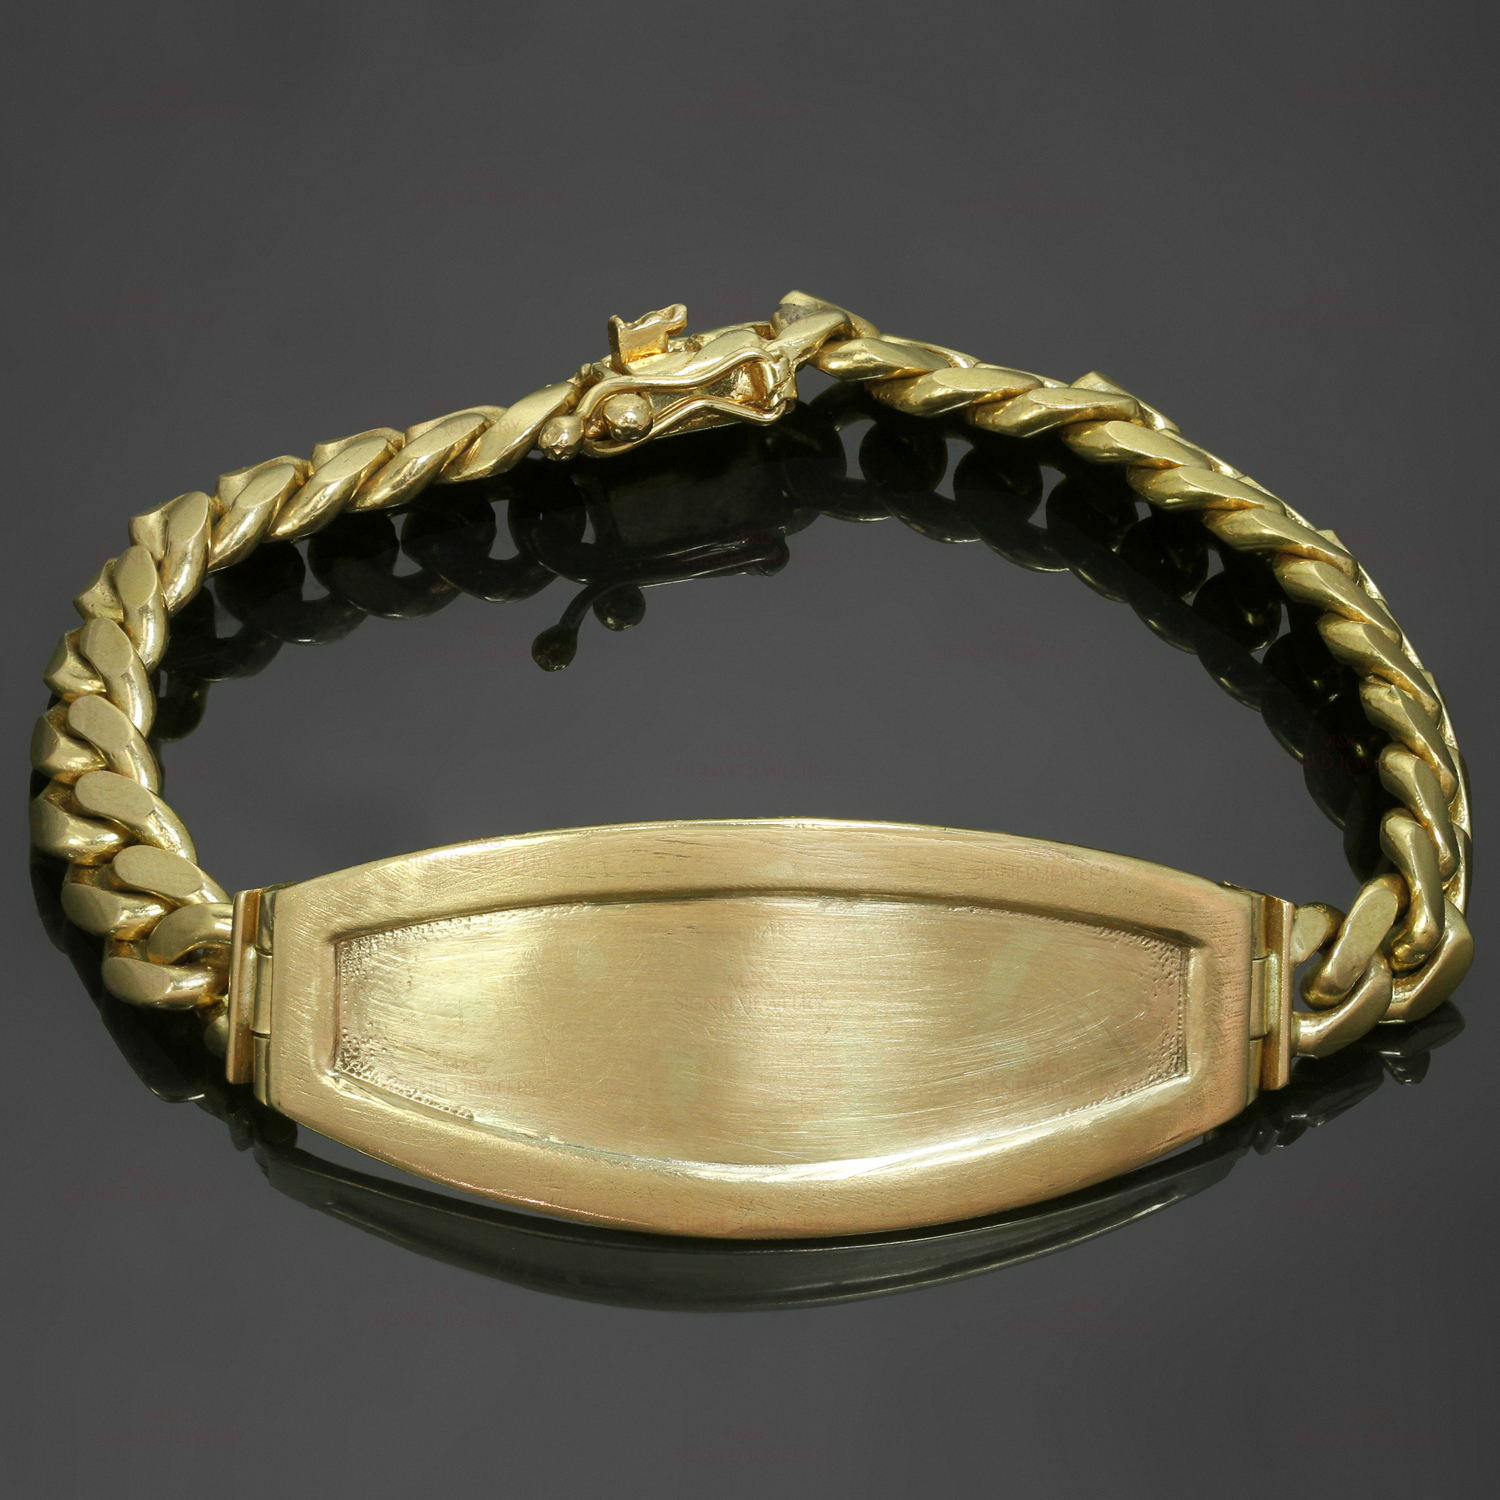 14k Yellow Gold Unisex ID Bracelet